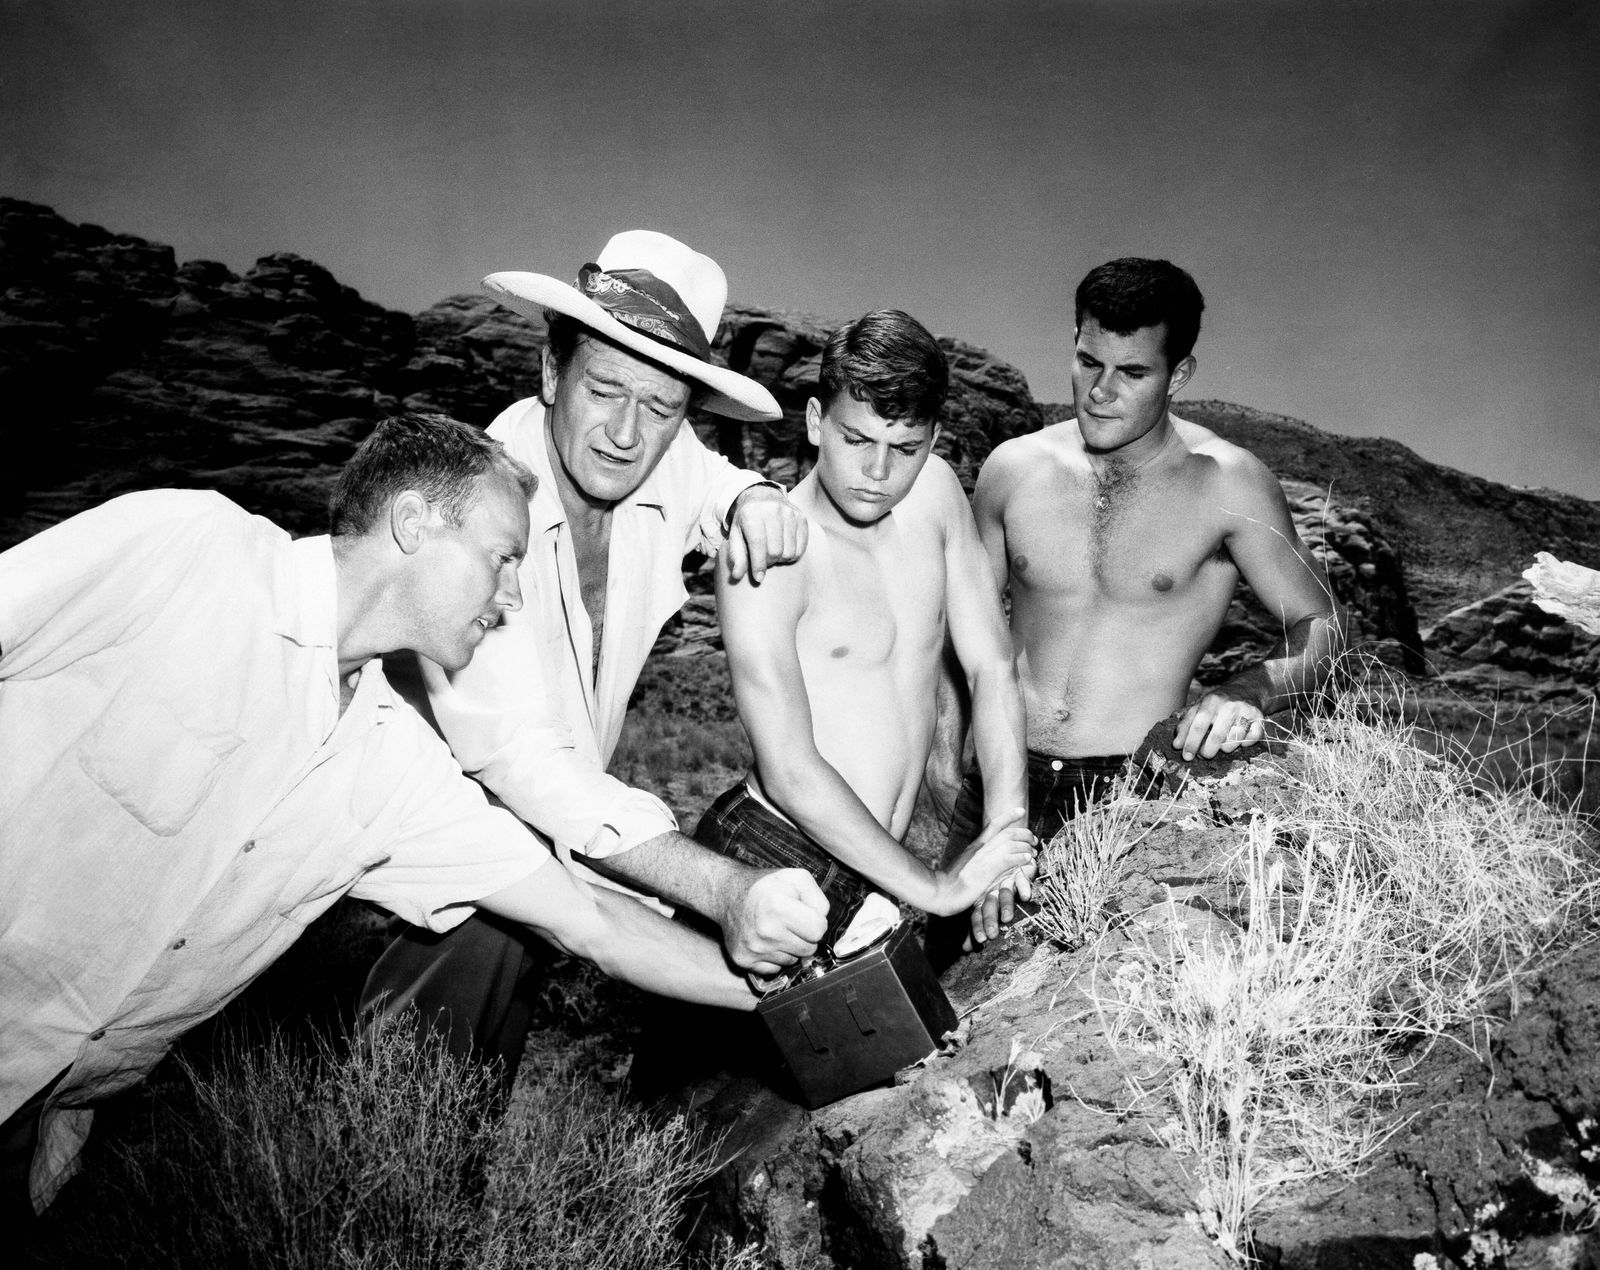 THE CONQUEROR, John Wayne, in hat, with (from left) local Douglas Gentry, sons Patrick Wayne, Michael Wayne, checking ou